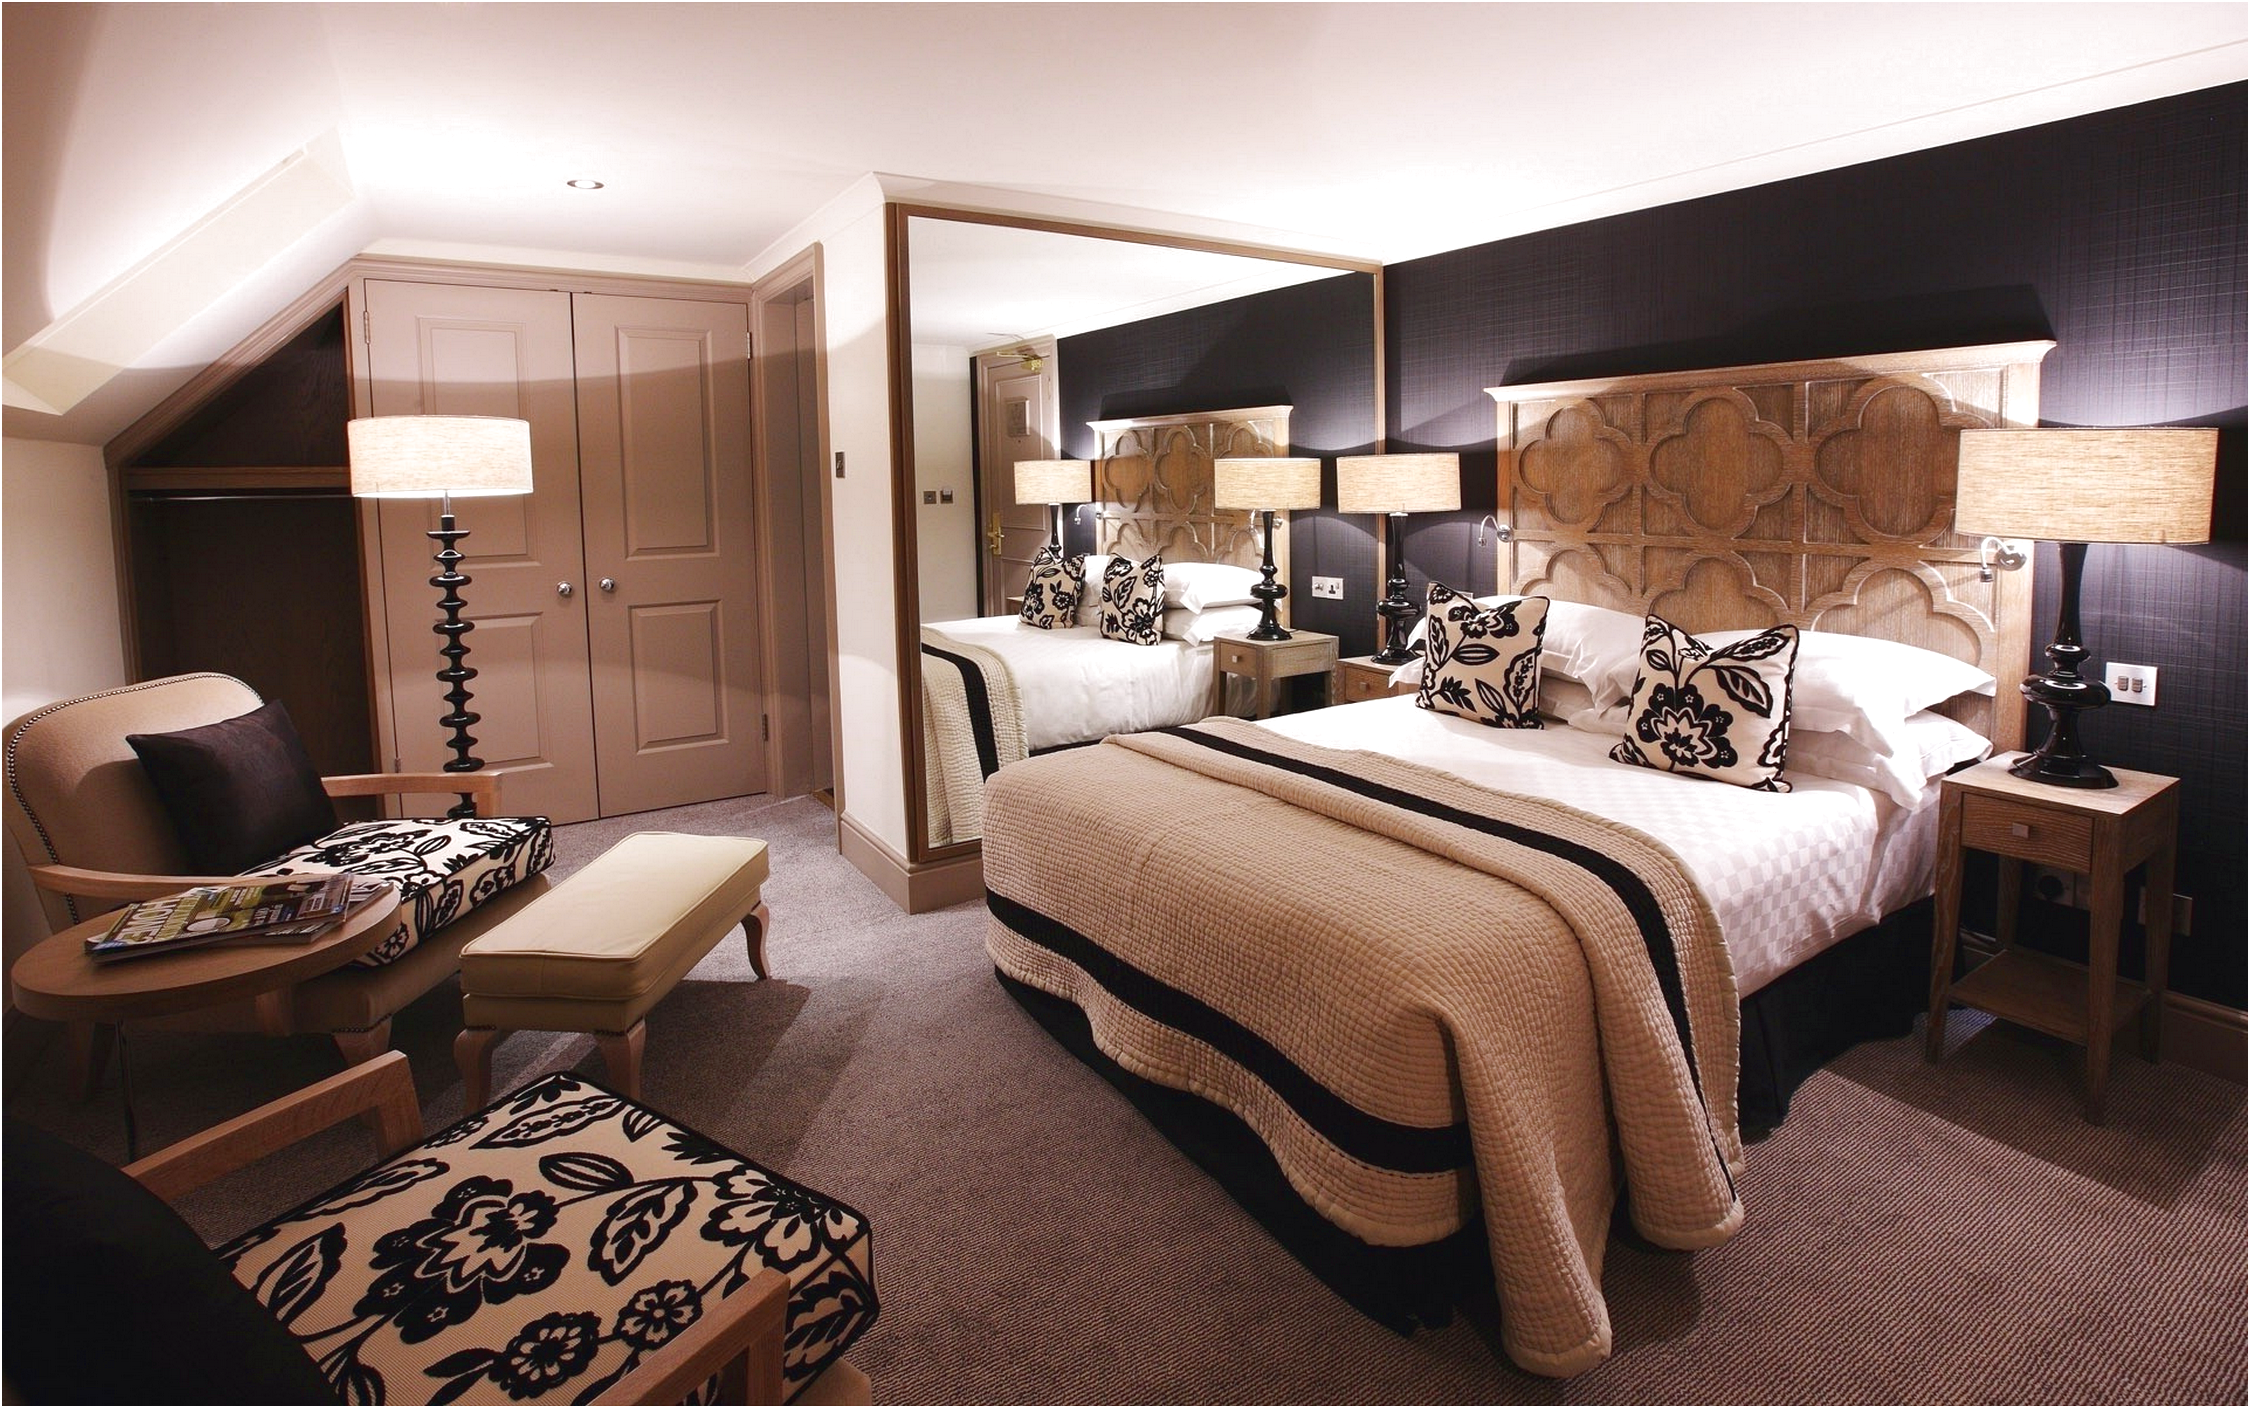 50 Inspiration to Create Your Best Modern Bedroom Design ...